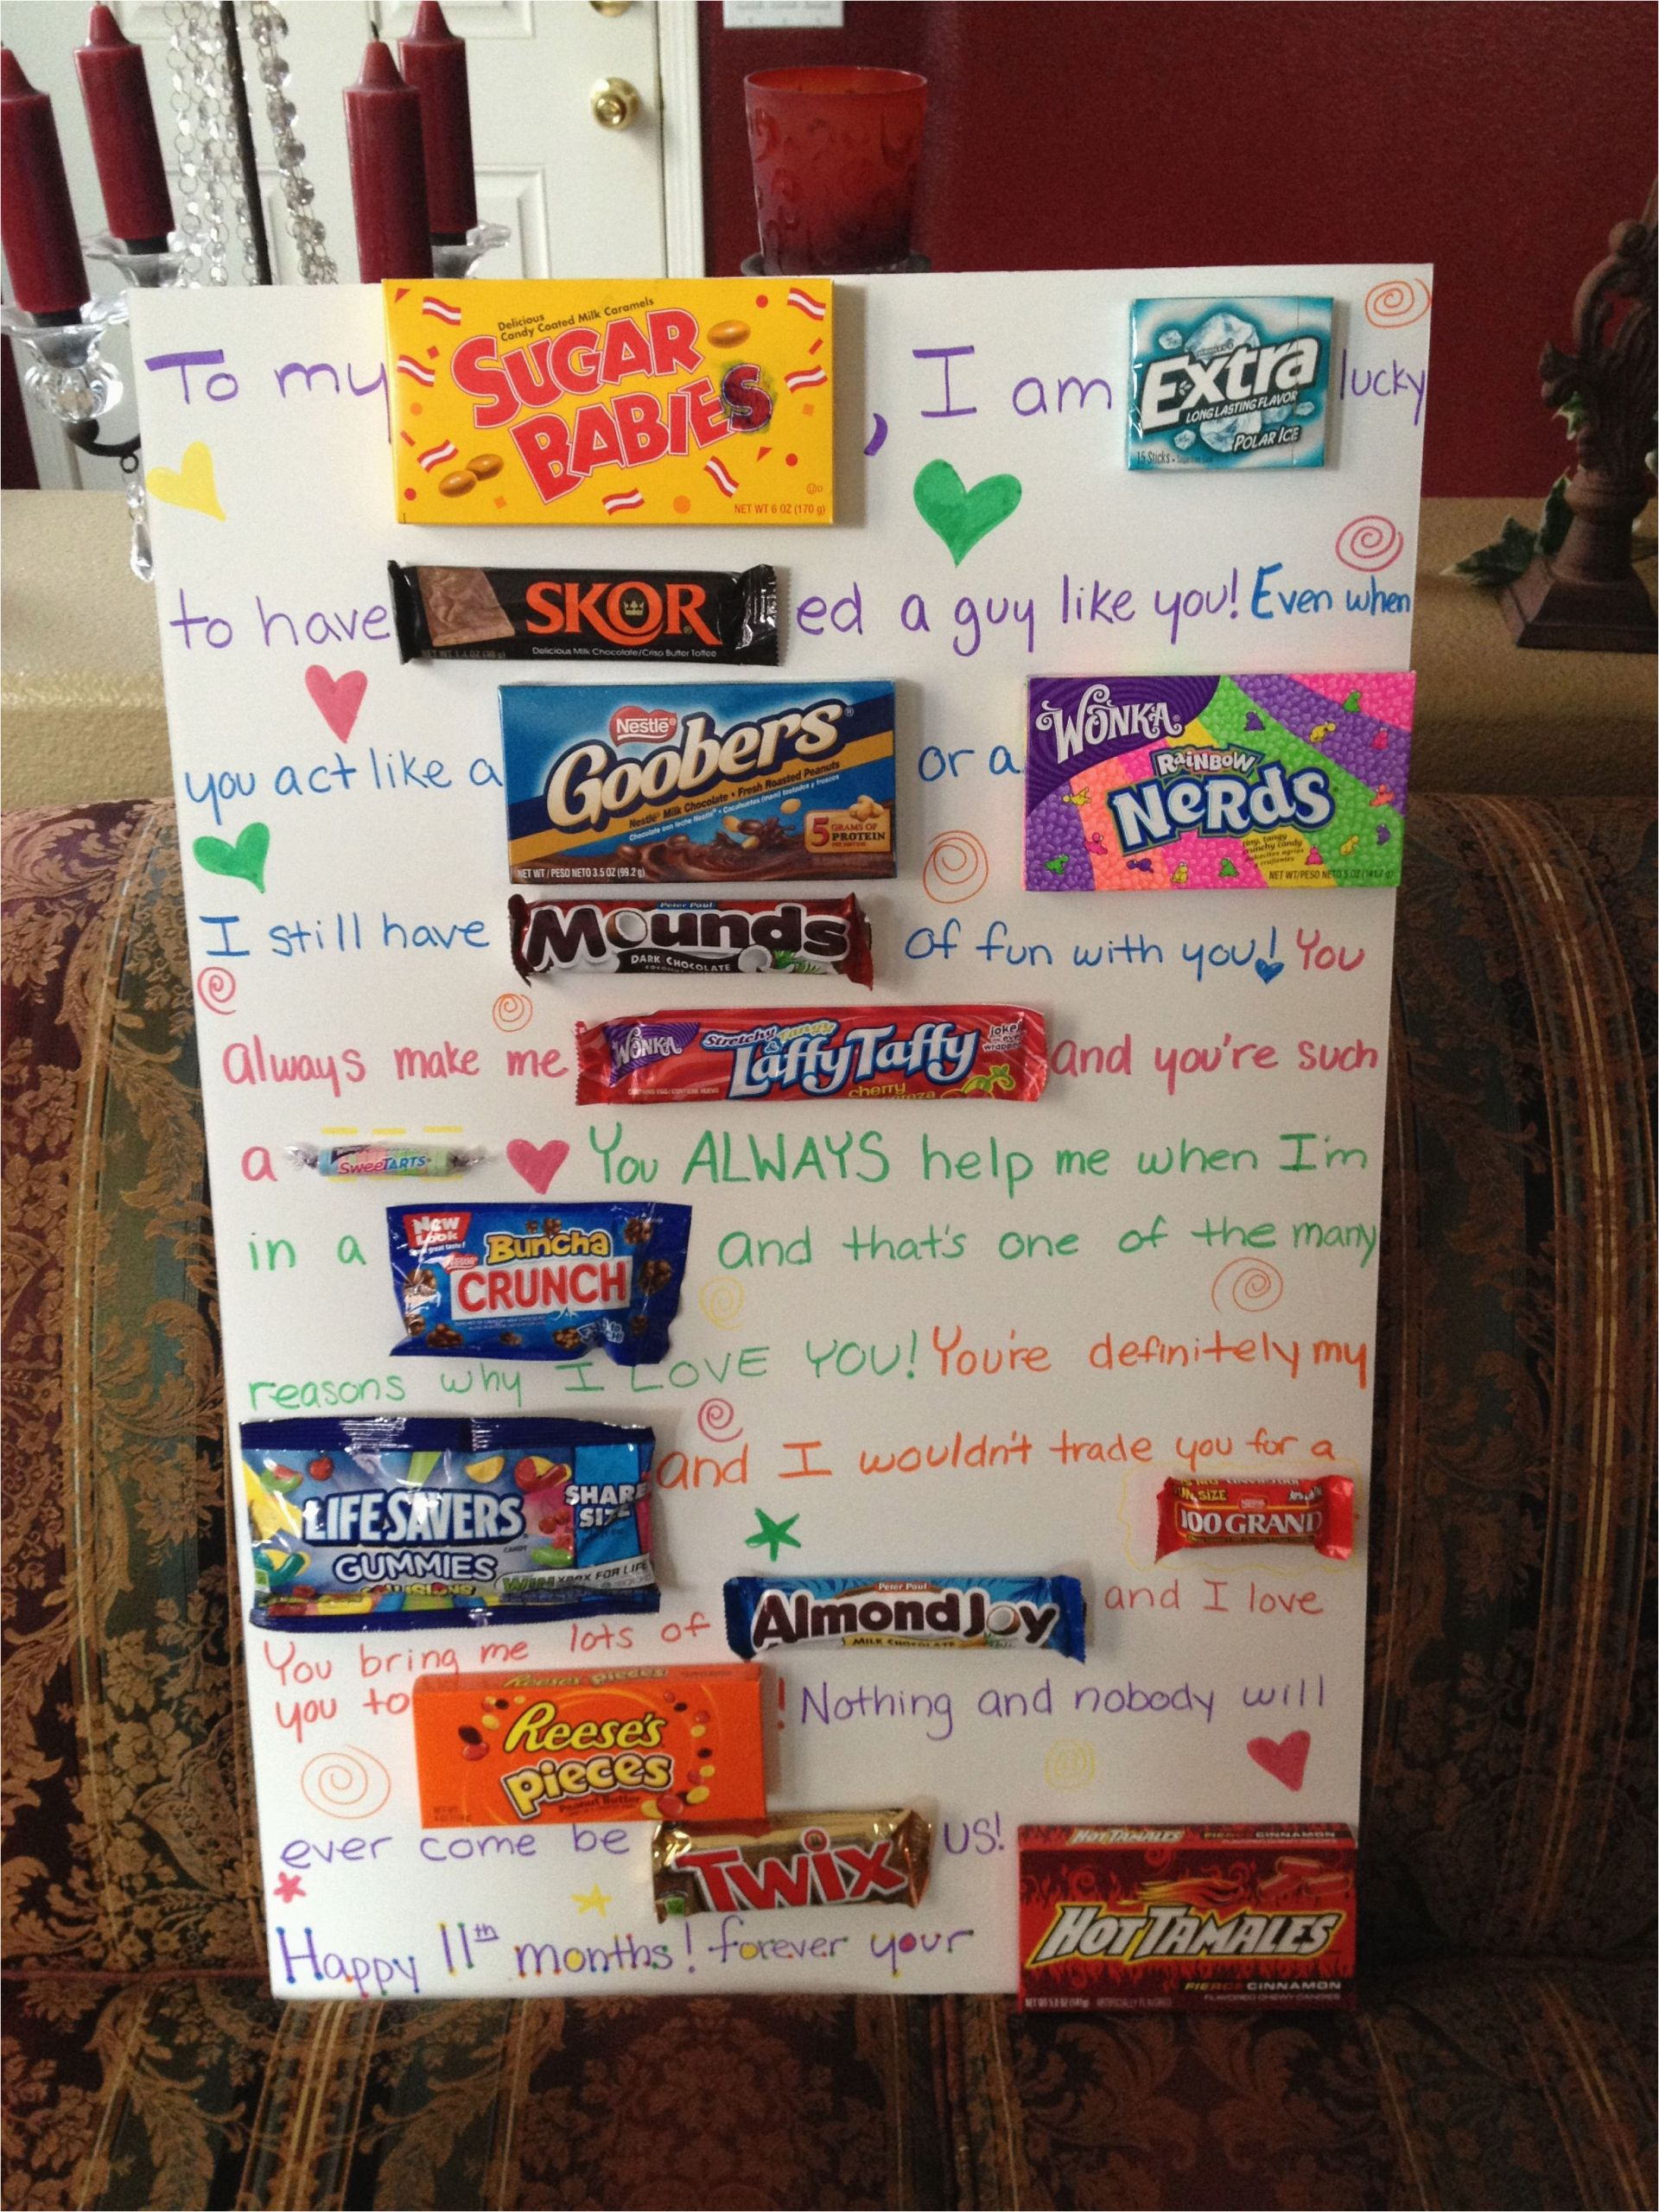 Birthday Gifts for Him Boyfriends that 39 S so Creative but You Have to Buy All that Candy